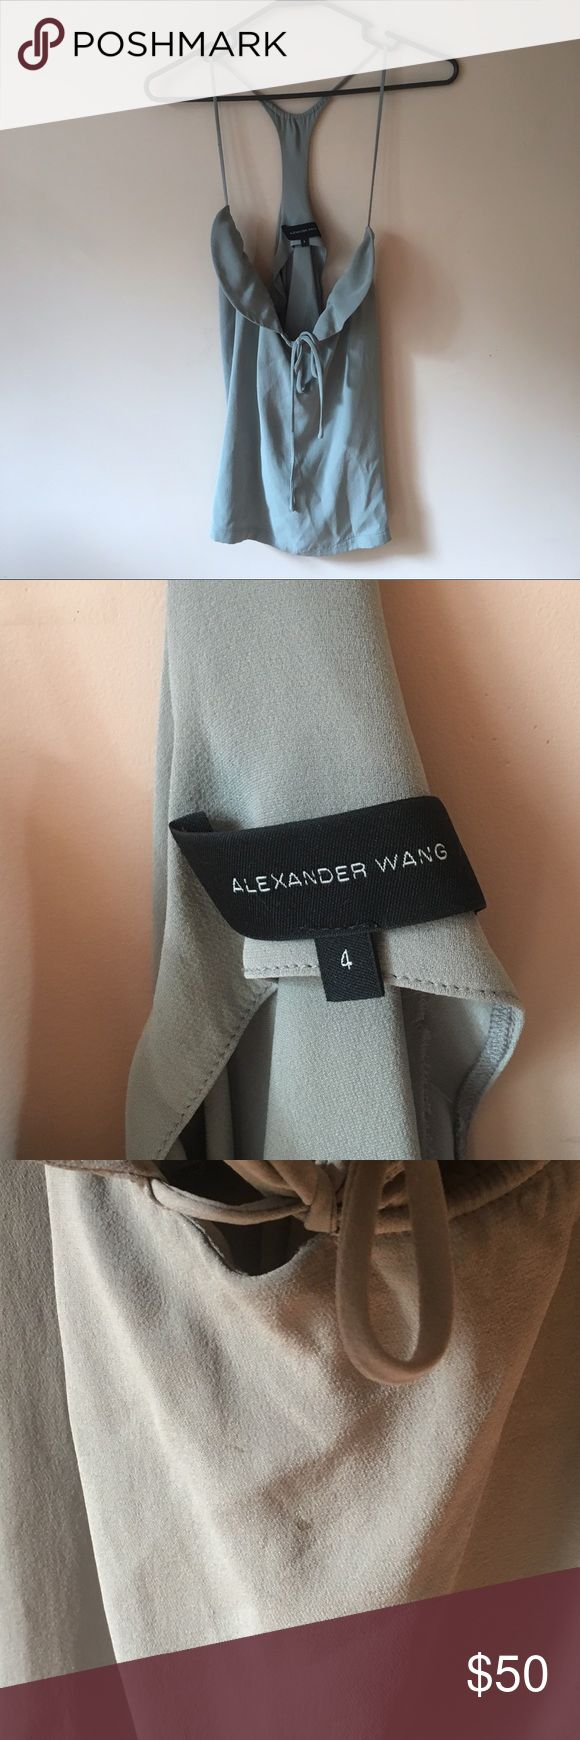 alexander wang racerback tank silk crepe tank top with a dry hand feel in a light gray color. there is a peter pan collar at the neck with hanging ties and the fit is loose and flowy.  this top needs a little tlc to bring it back to life but it's so cute I️ think it's worth it! the collar is slightly rotated and needs to be ironed or steam pressed back in placed and there is also a small stain on the front (pictured) in most positions, the hanging ties cover the stain but I️ priced this low…